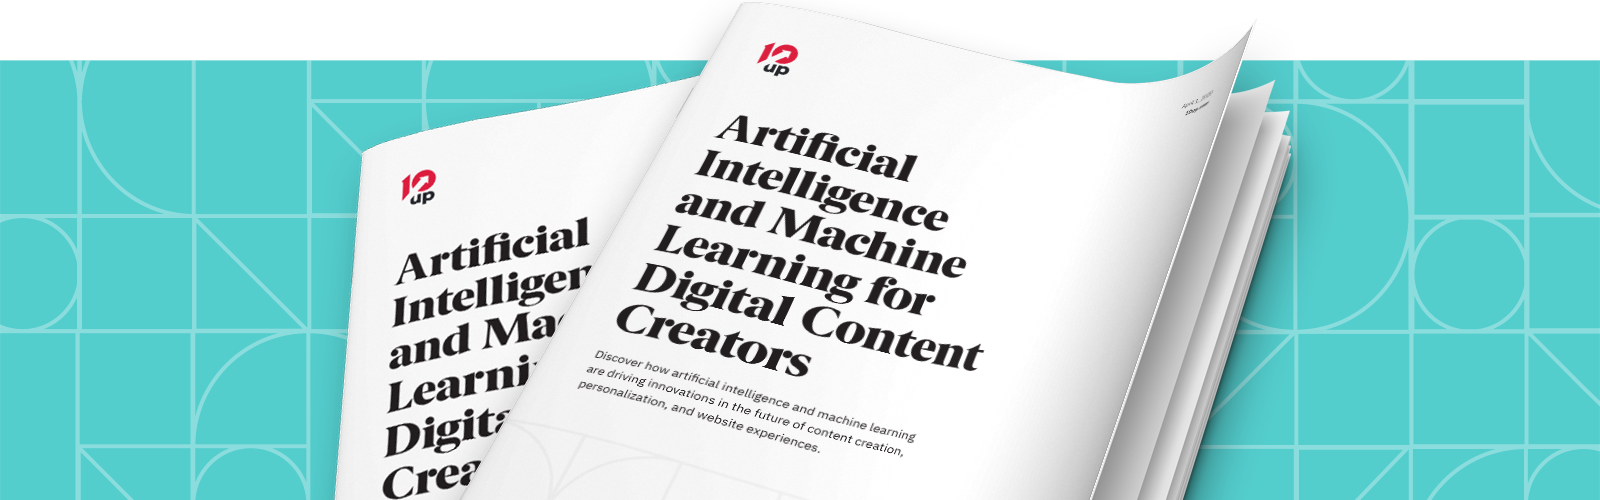 Applications of Artificial Intelligence and Machine Learning for Digital Content Creators Whitepaper Cover